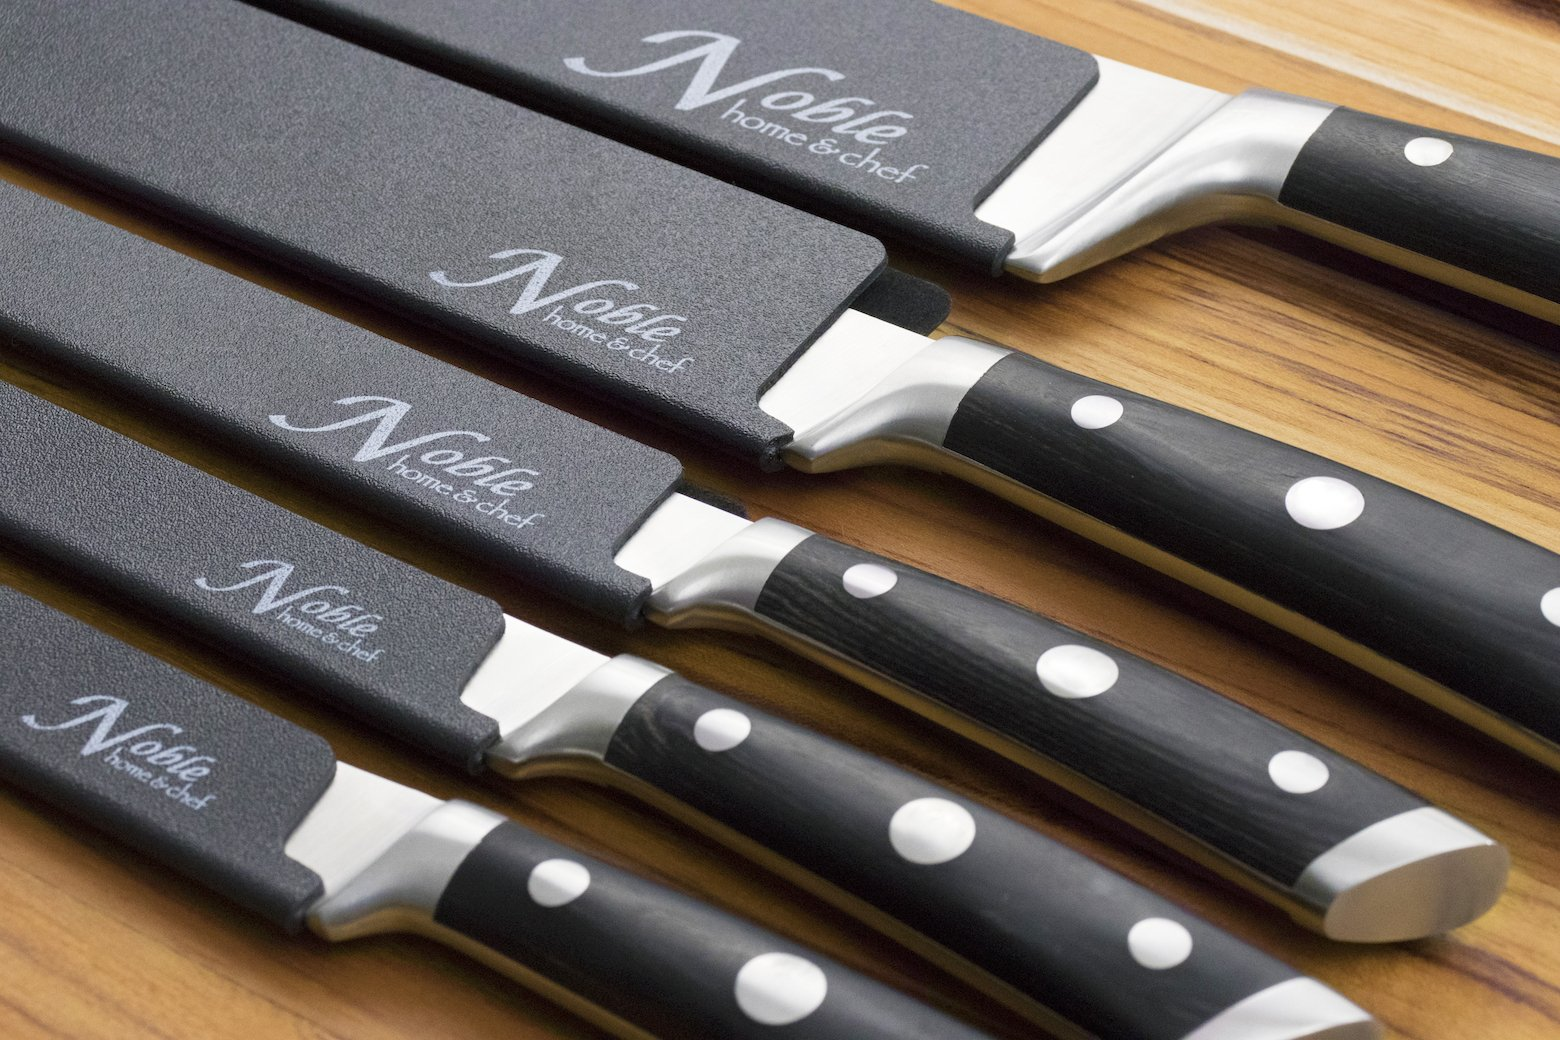 5-Piece Universal Knife Edge Guards are More Durable, BPA-Free, Gentle on Your Blades, and Long-Lasting. Noble Home & Chef Knife Covers Are Non-Toxic and Abrasion Resistant! (Knives Not Included) by Noble Home & Chef (Image #4)